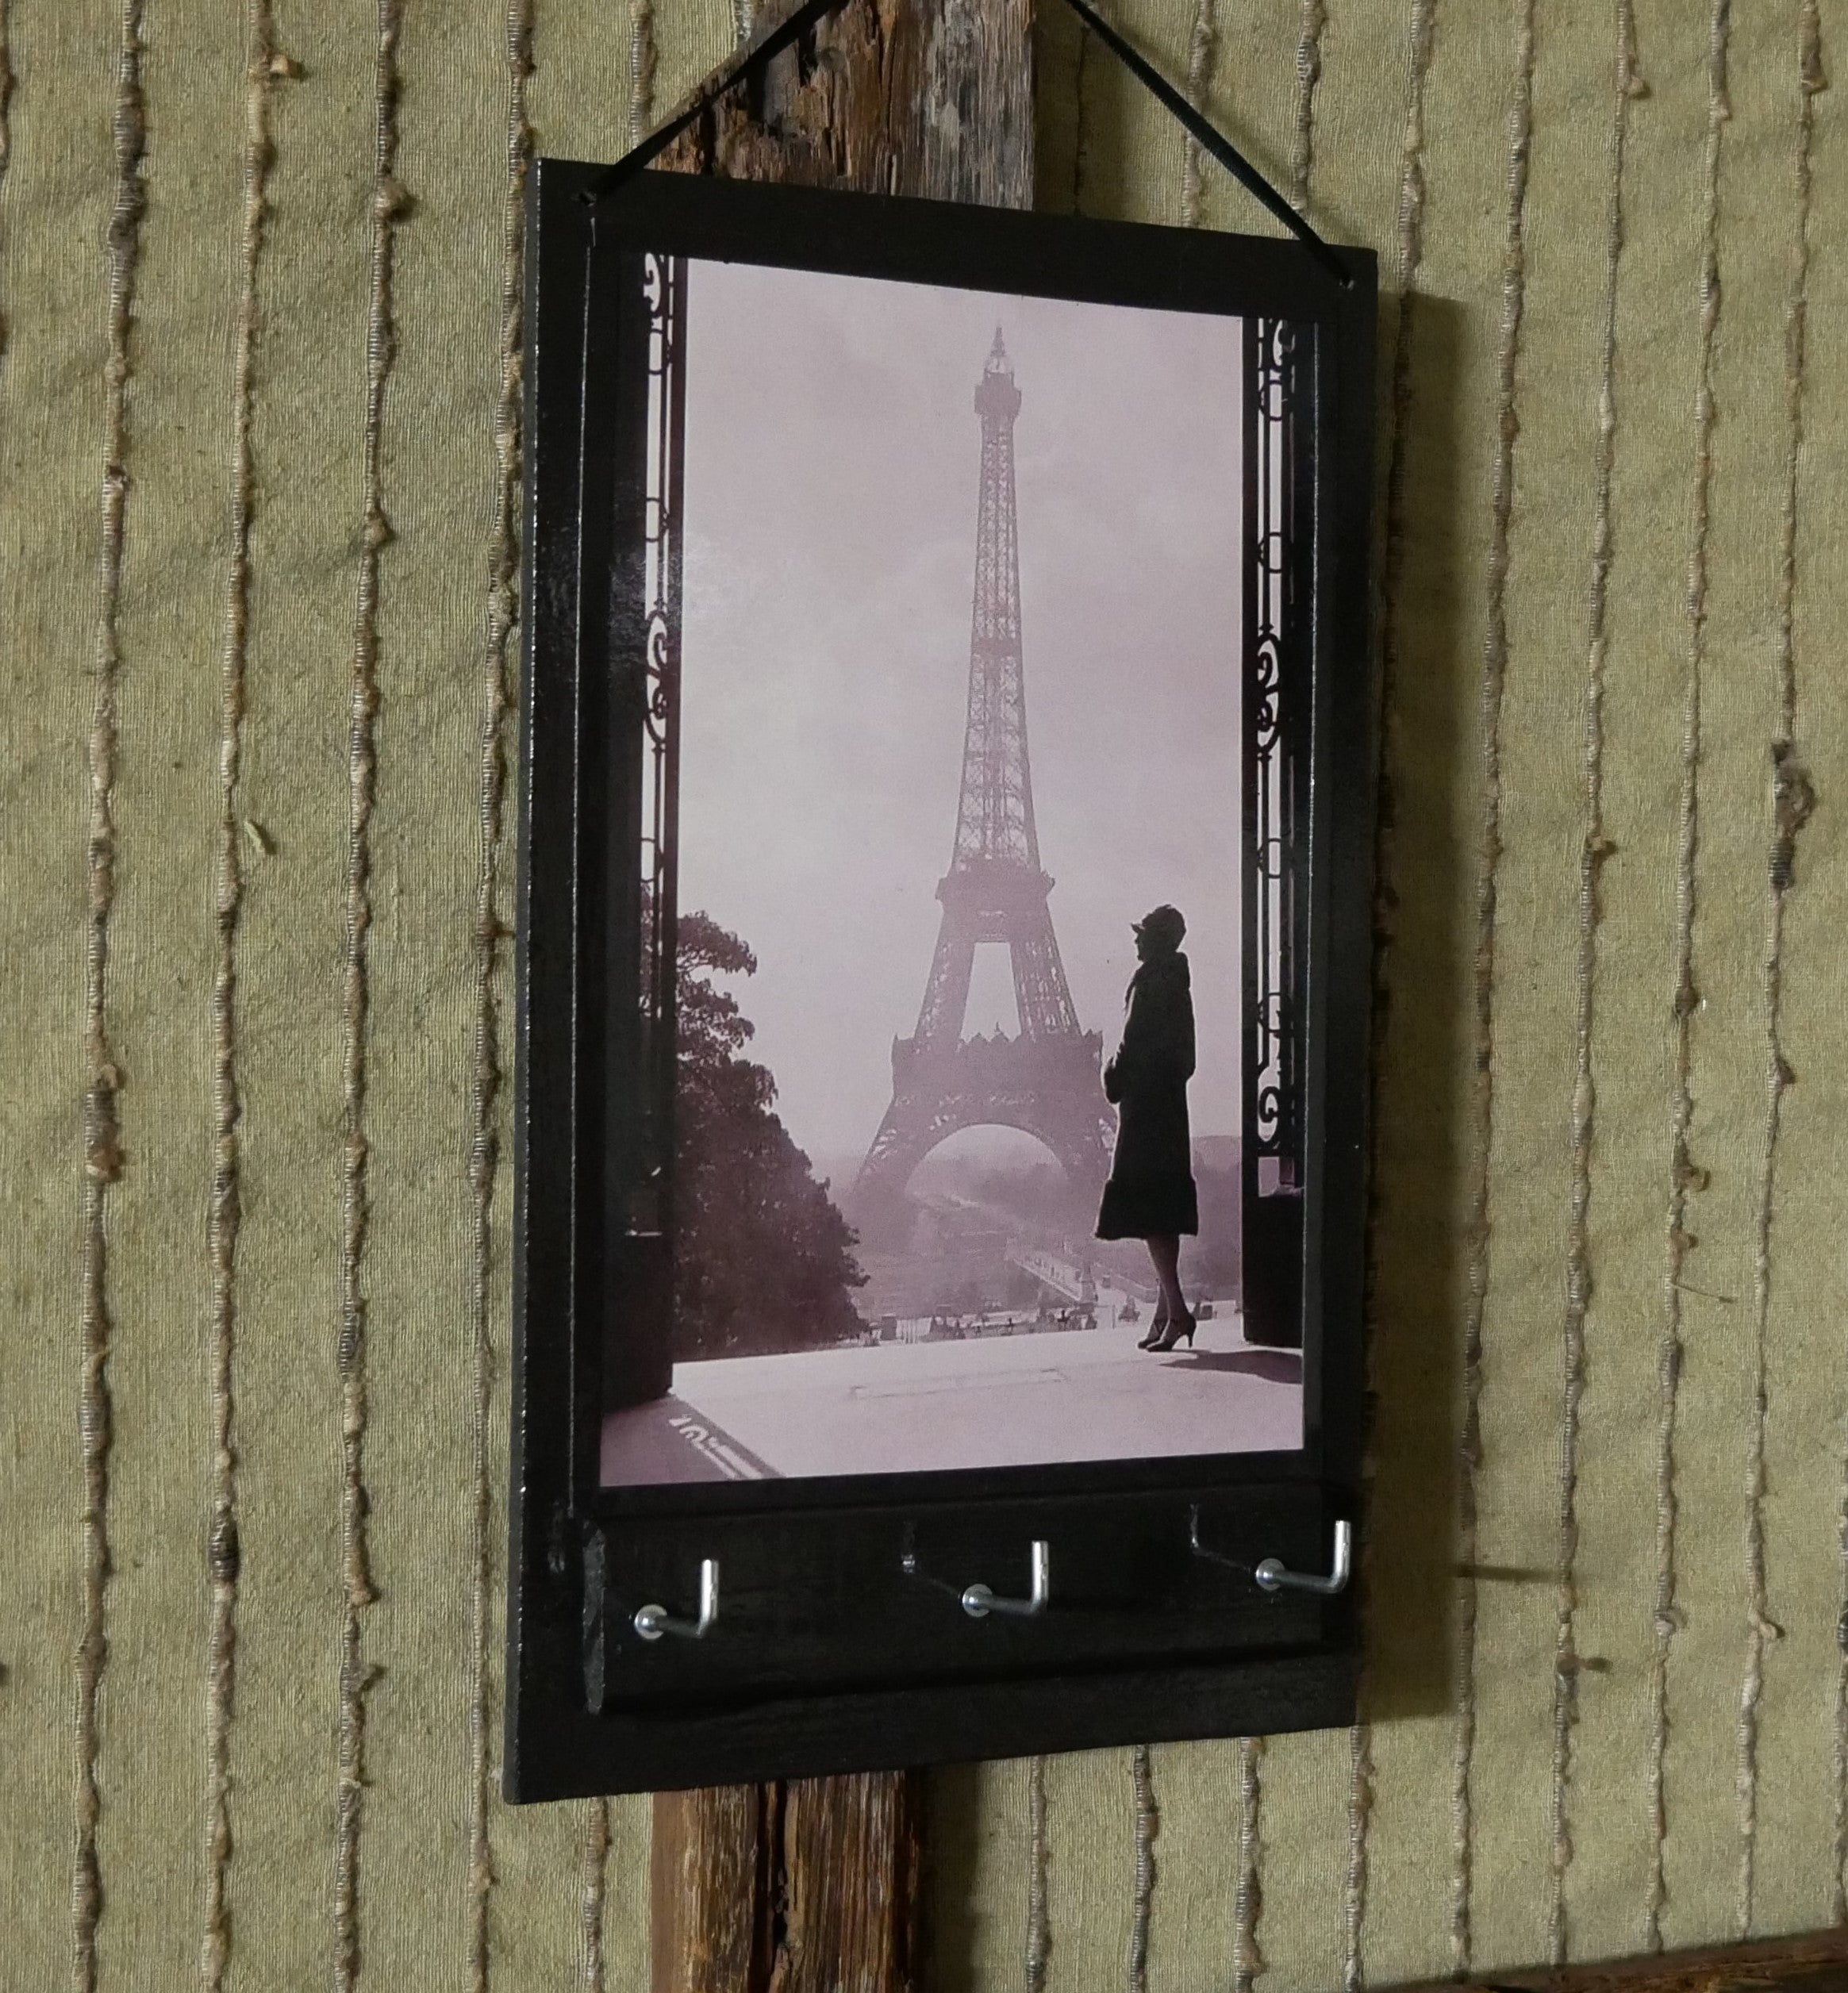 Key-Rack-Holder-with-Paris-Print-Nchanted-Gifts